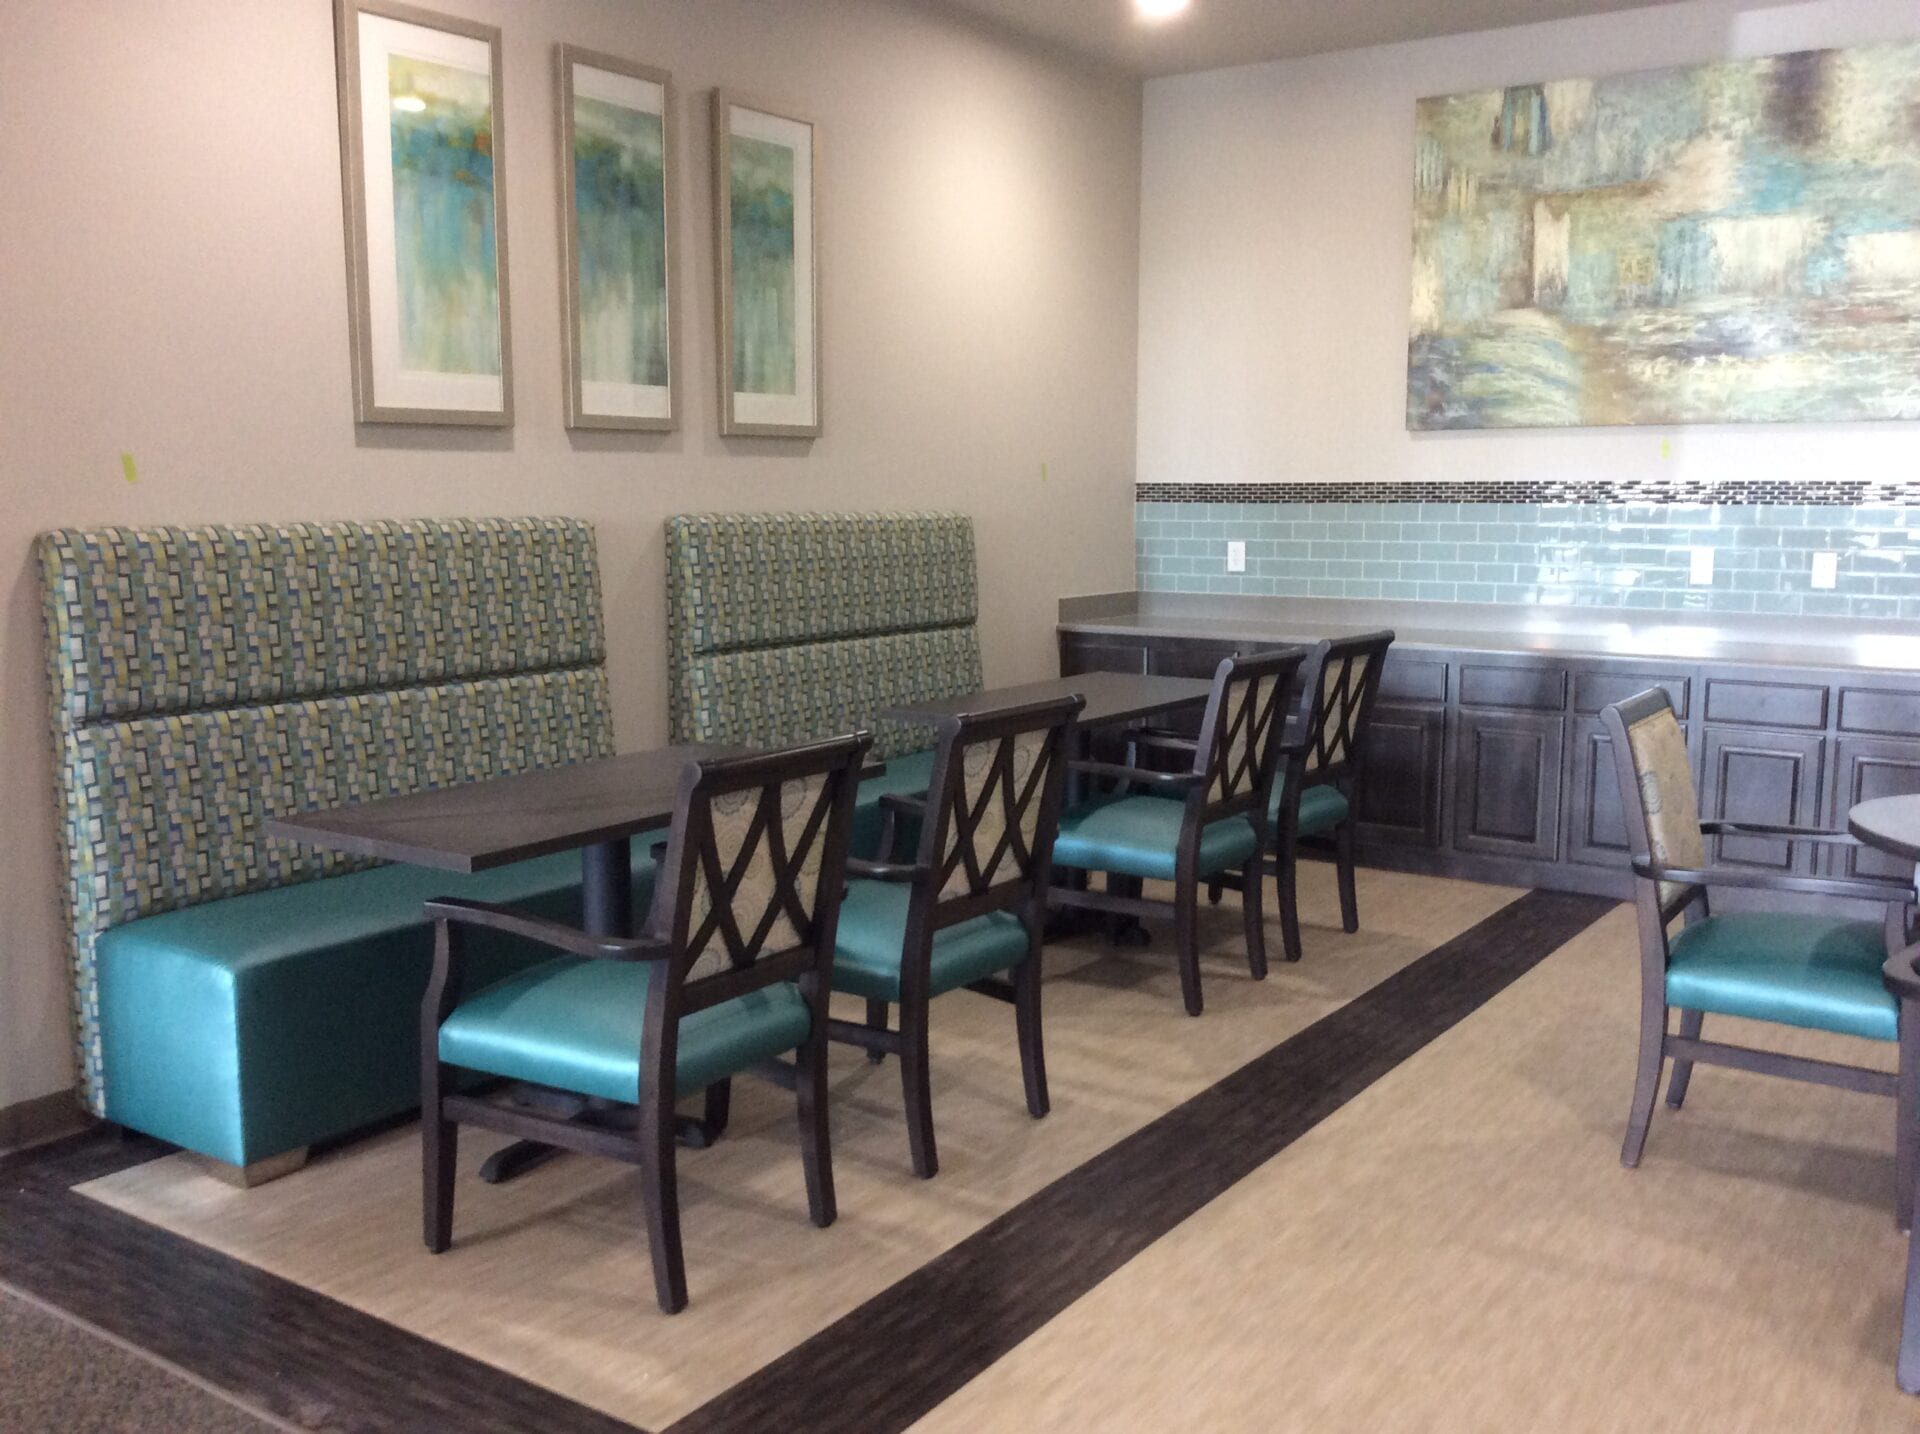 Custom Two Tone Booth and Chairs, custom home furniture built for style and quality.